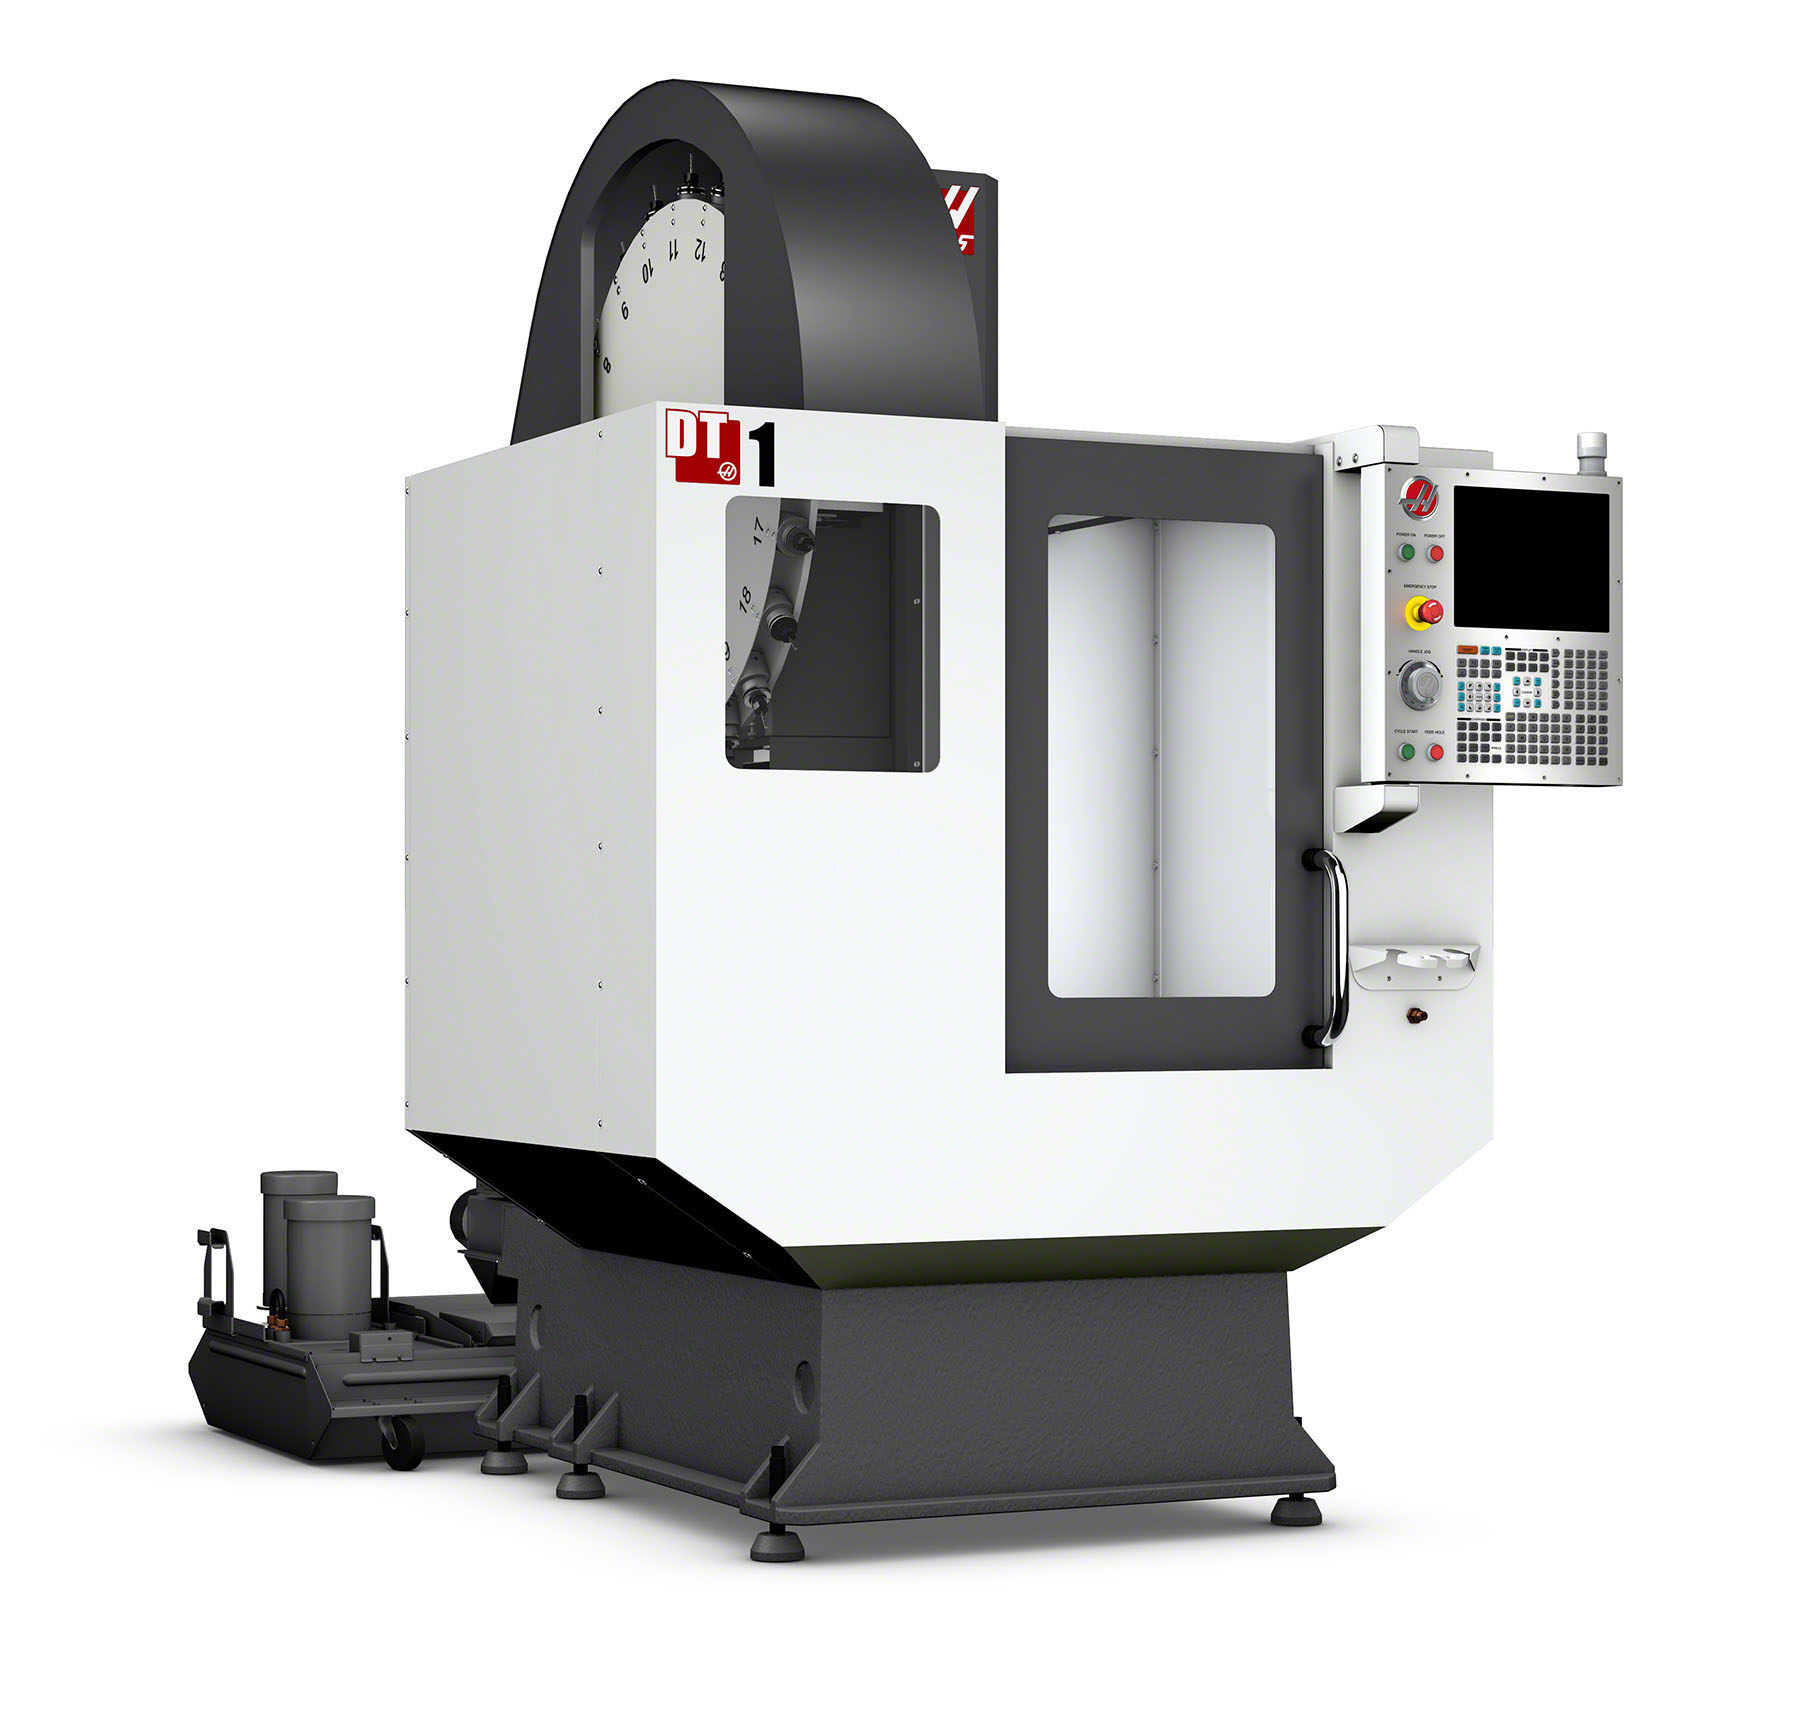 Haas Dt 1 Drill Tap Center Gets 15k Spindle